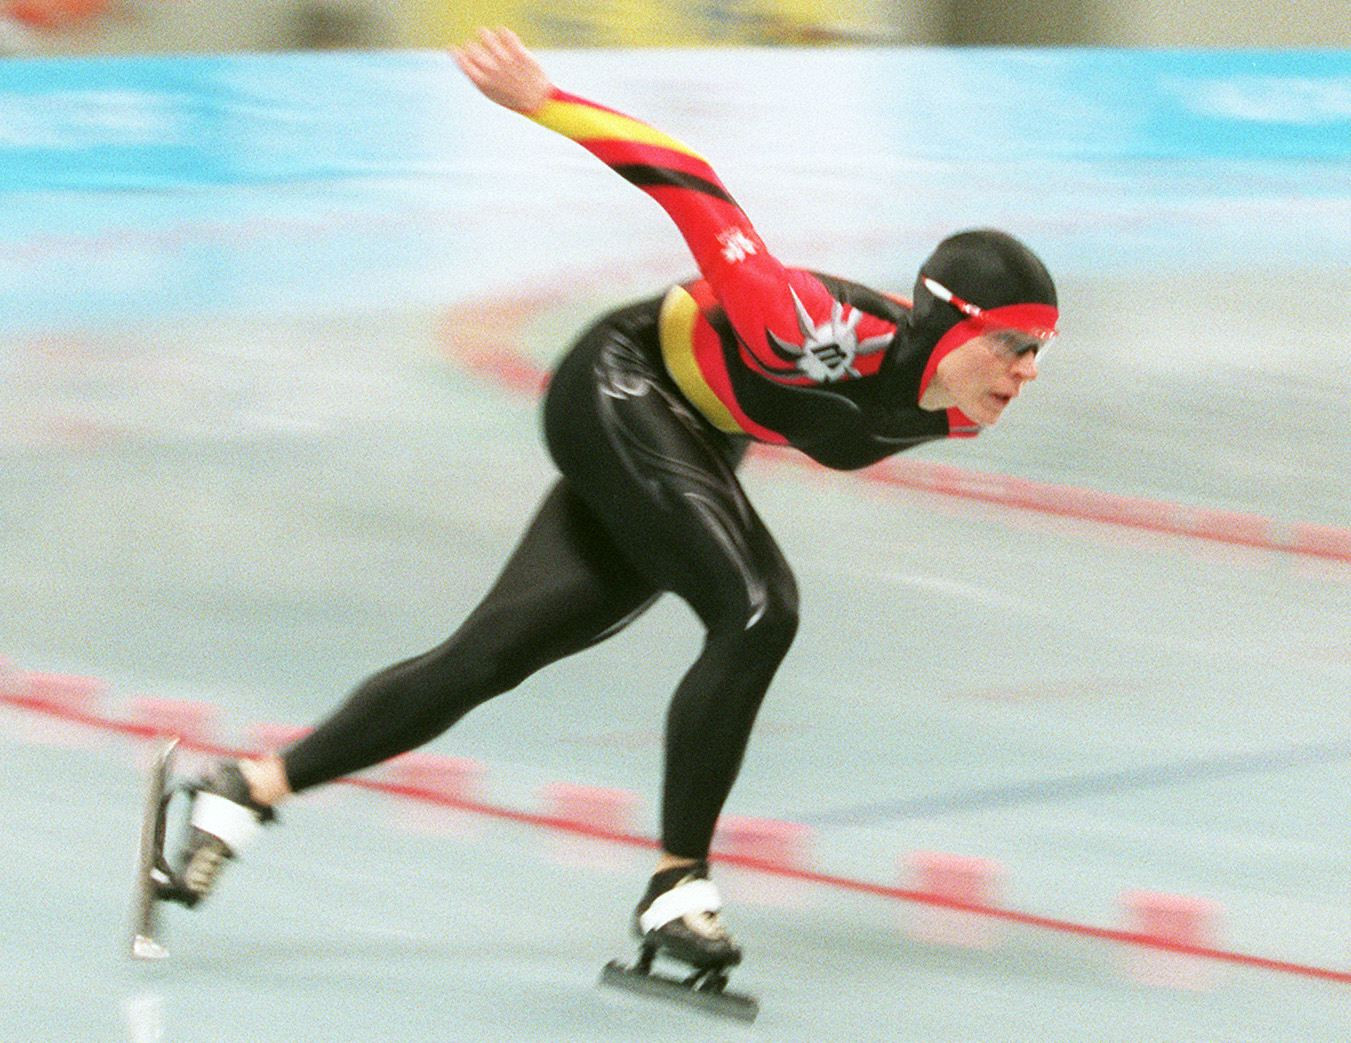 Gunda Niemann-Stirnemann, one of the most successful speed skaters of all time, is among a trio of new inductees into Germany's Sports Hall of Fame ©Getty Images